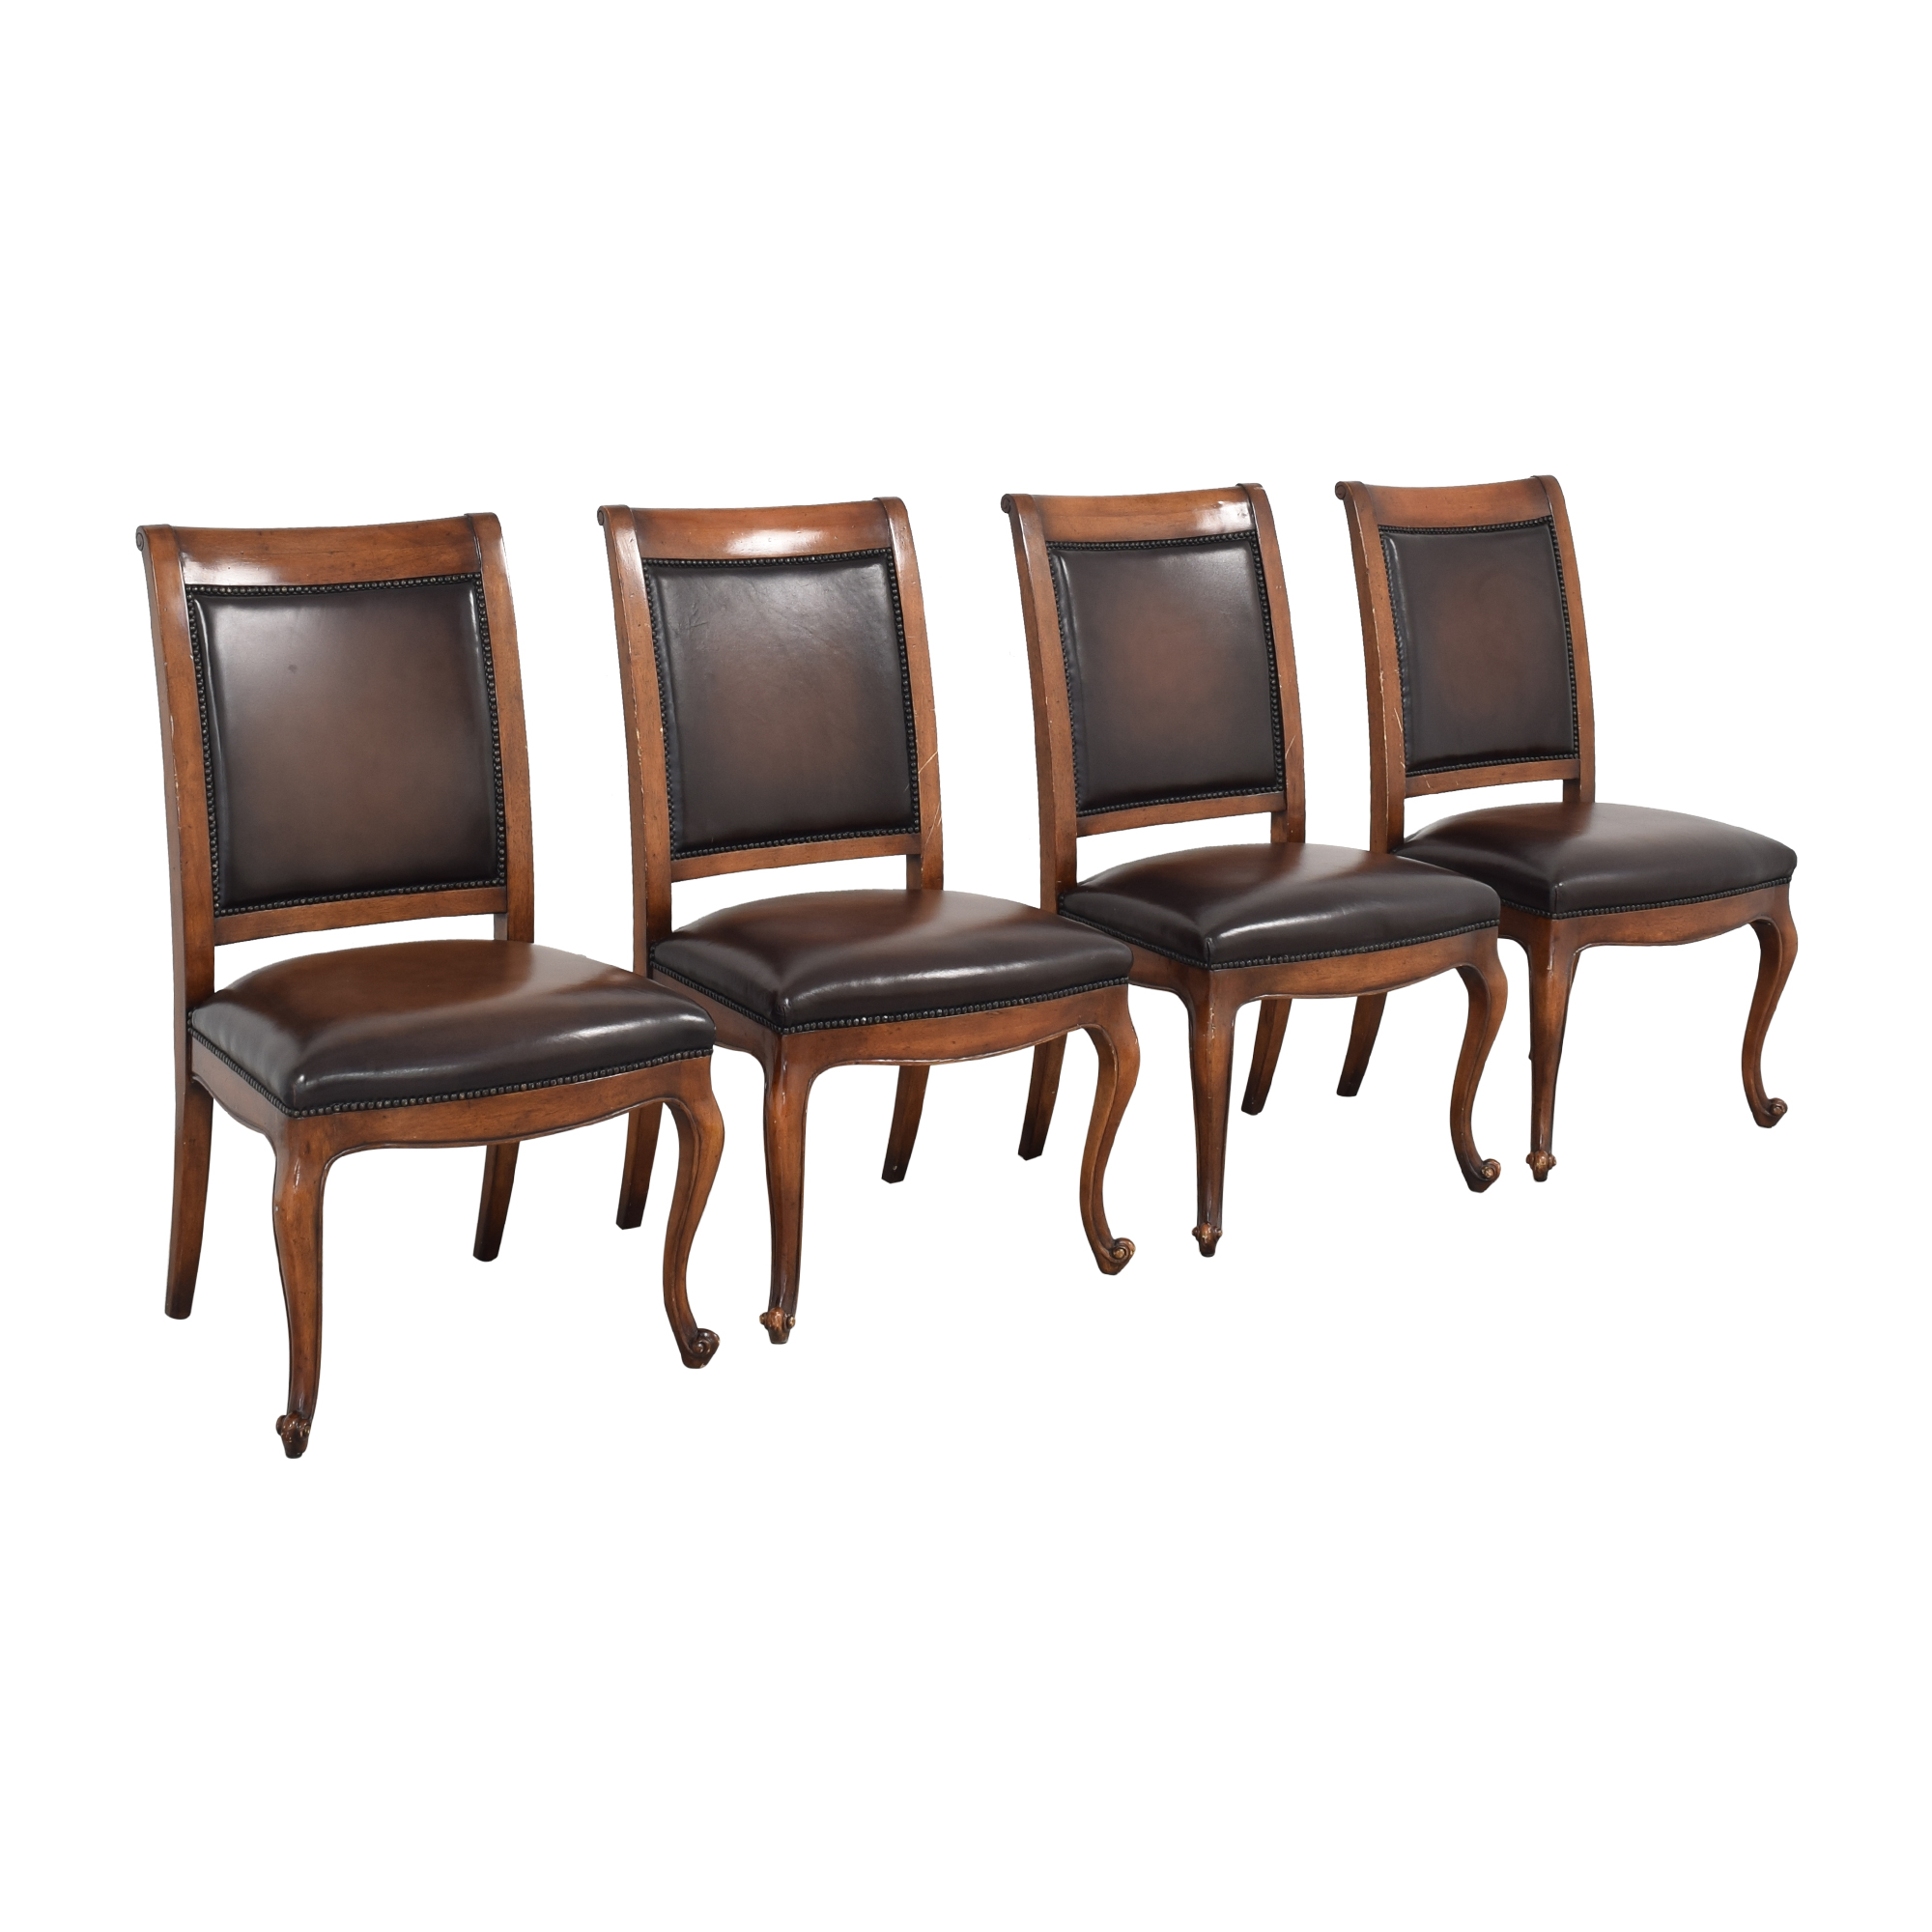 Theodore Alexander Theodore Alexander Dining Chairs Dining Chairs